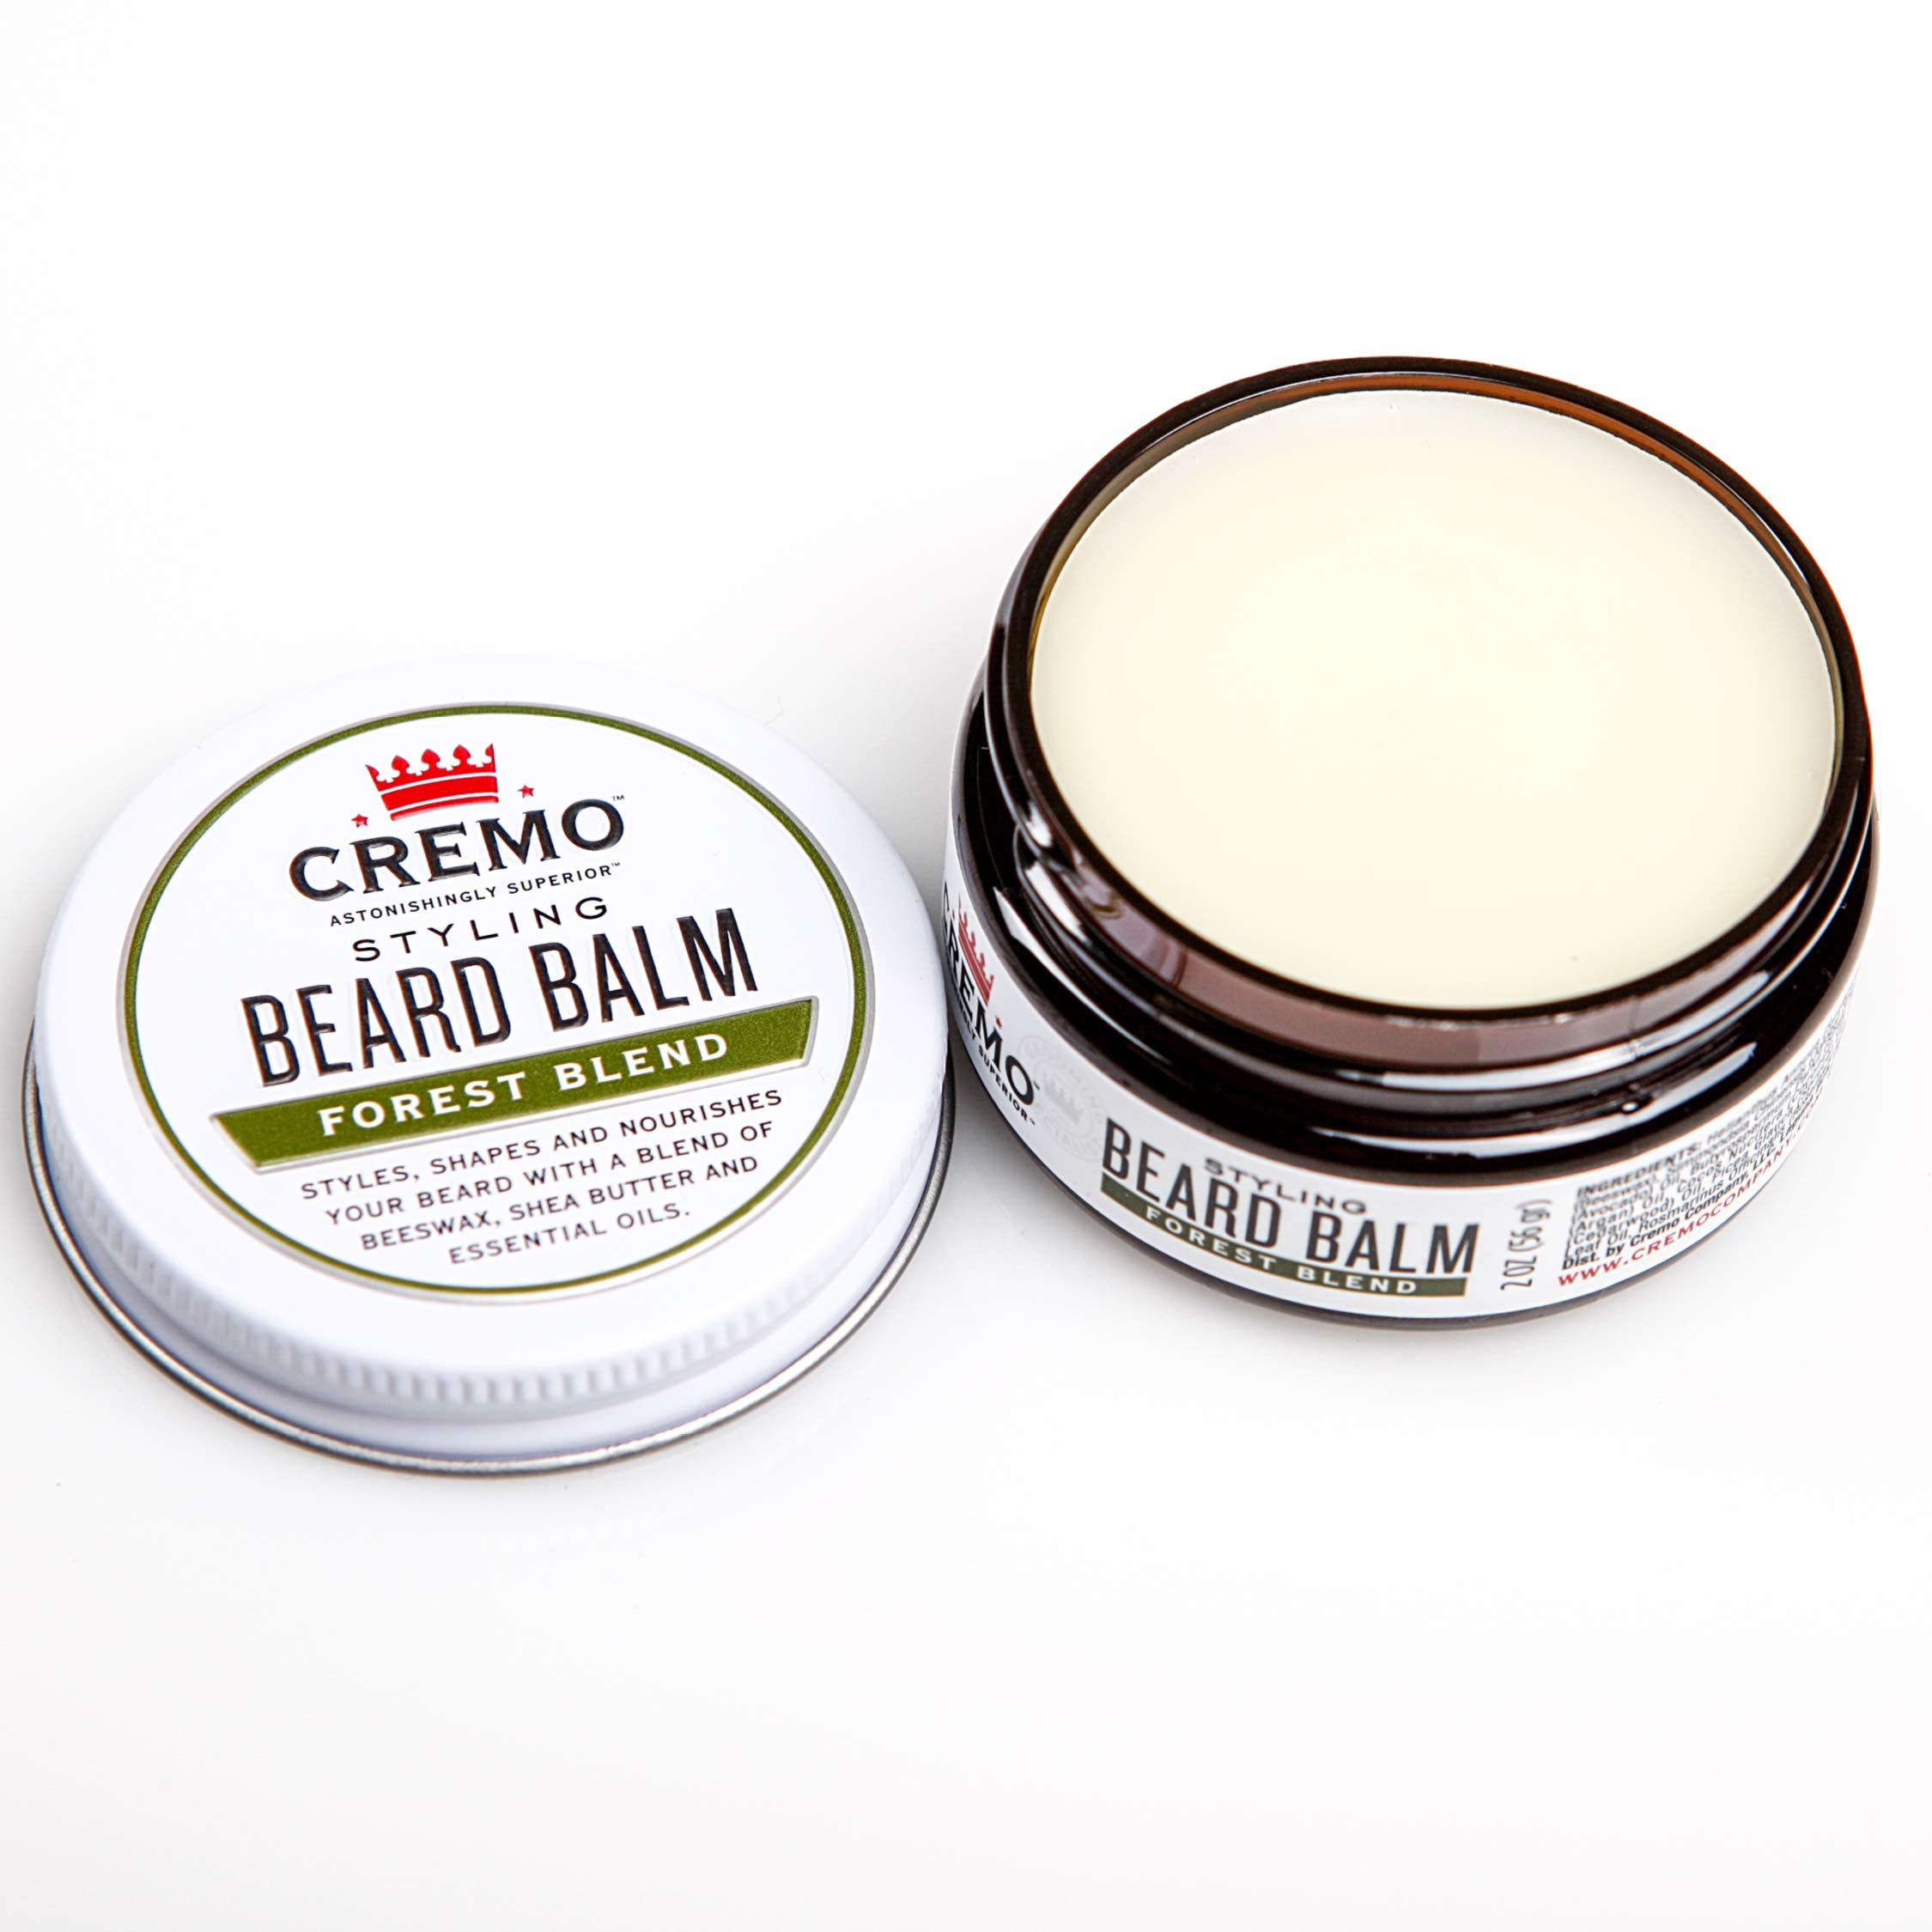 Cremo Styling Beard Balm, Forest Blend -- Nourishes, Shapes